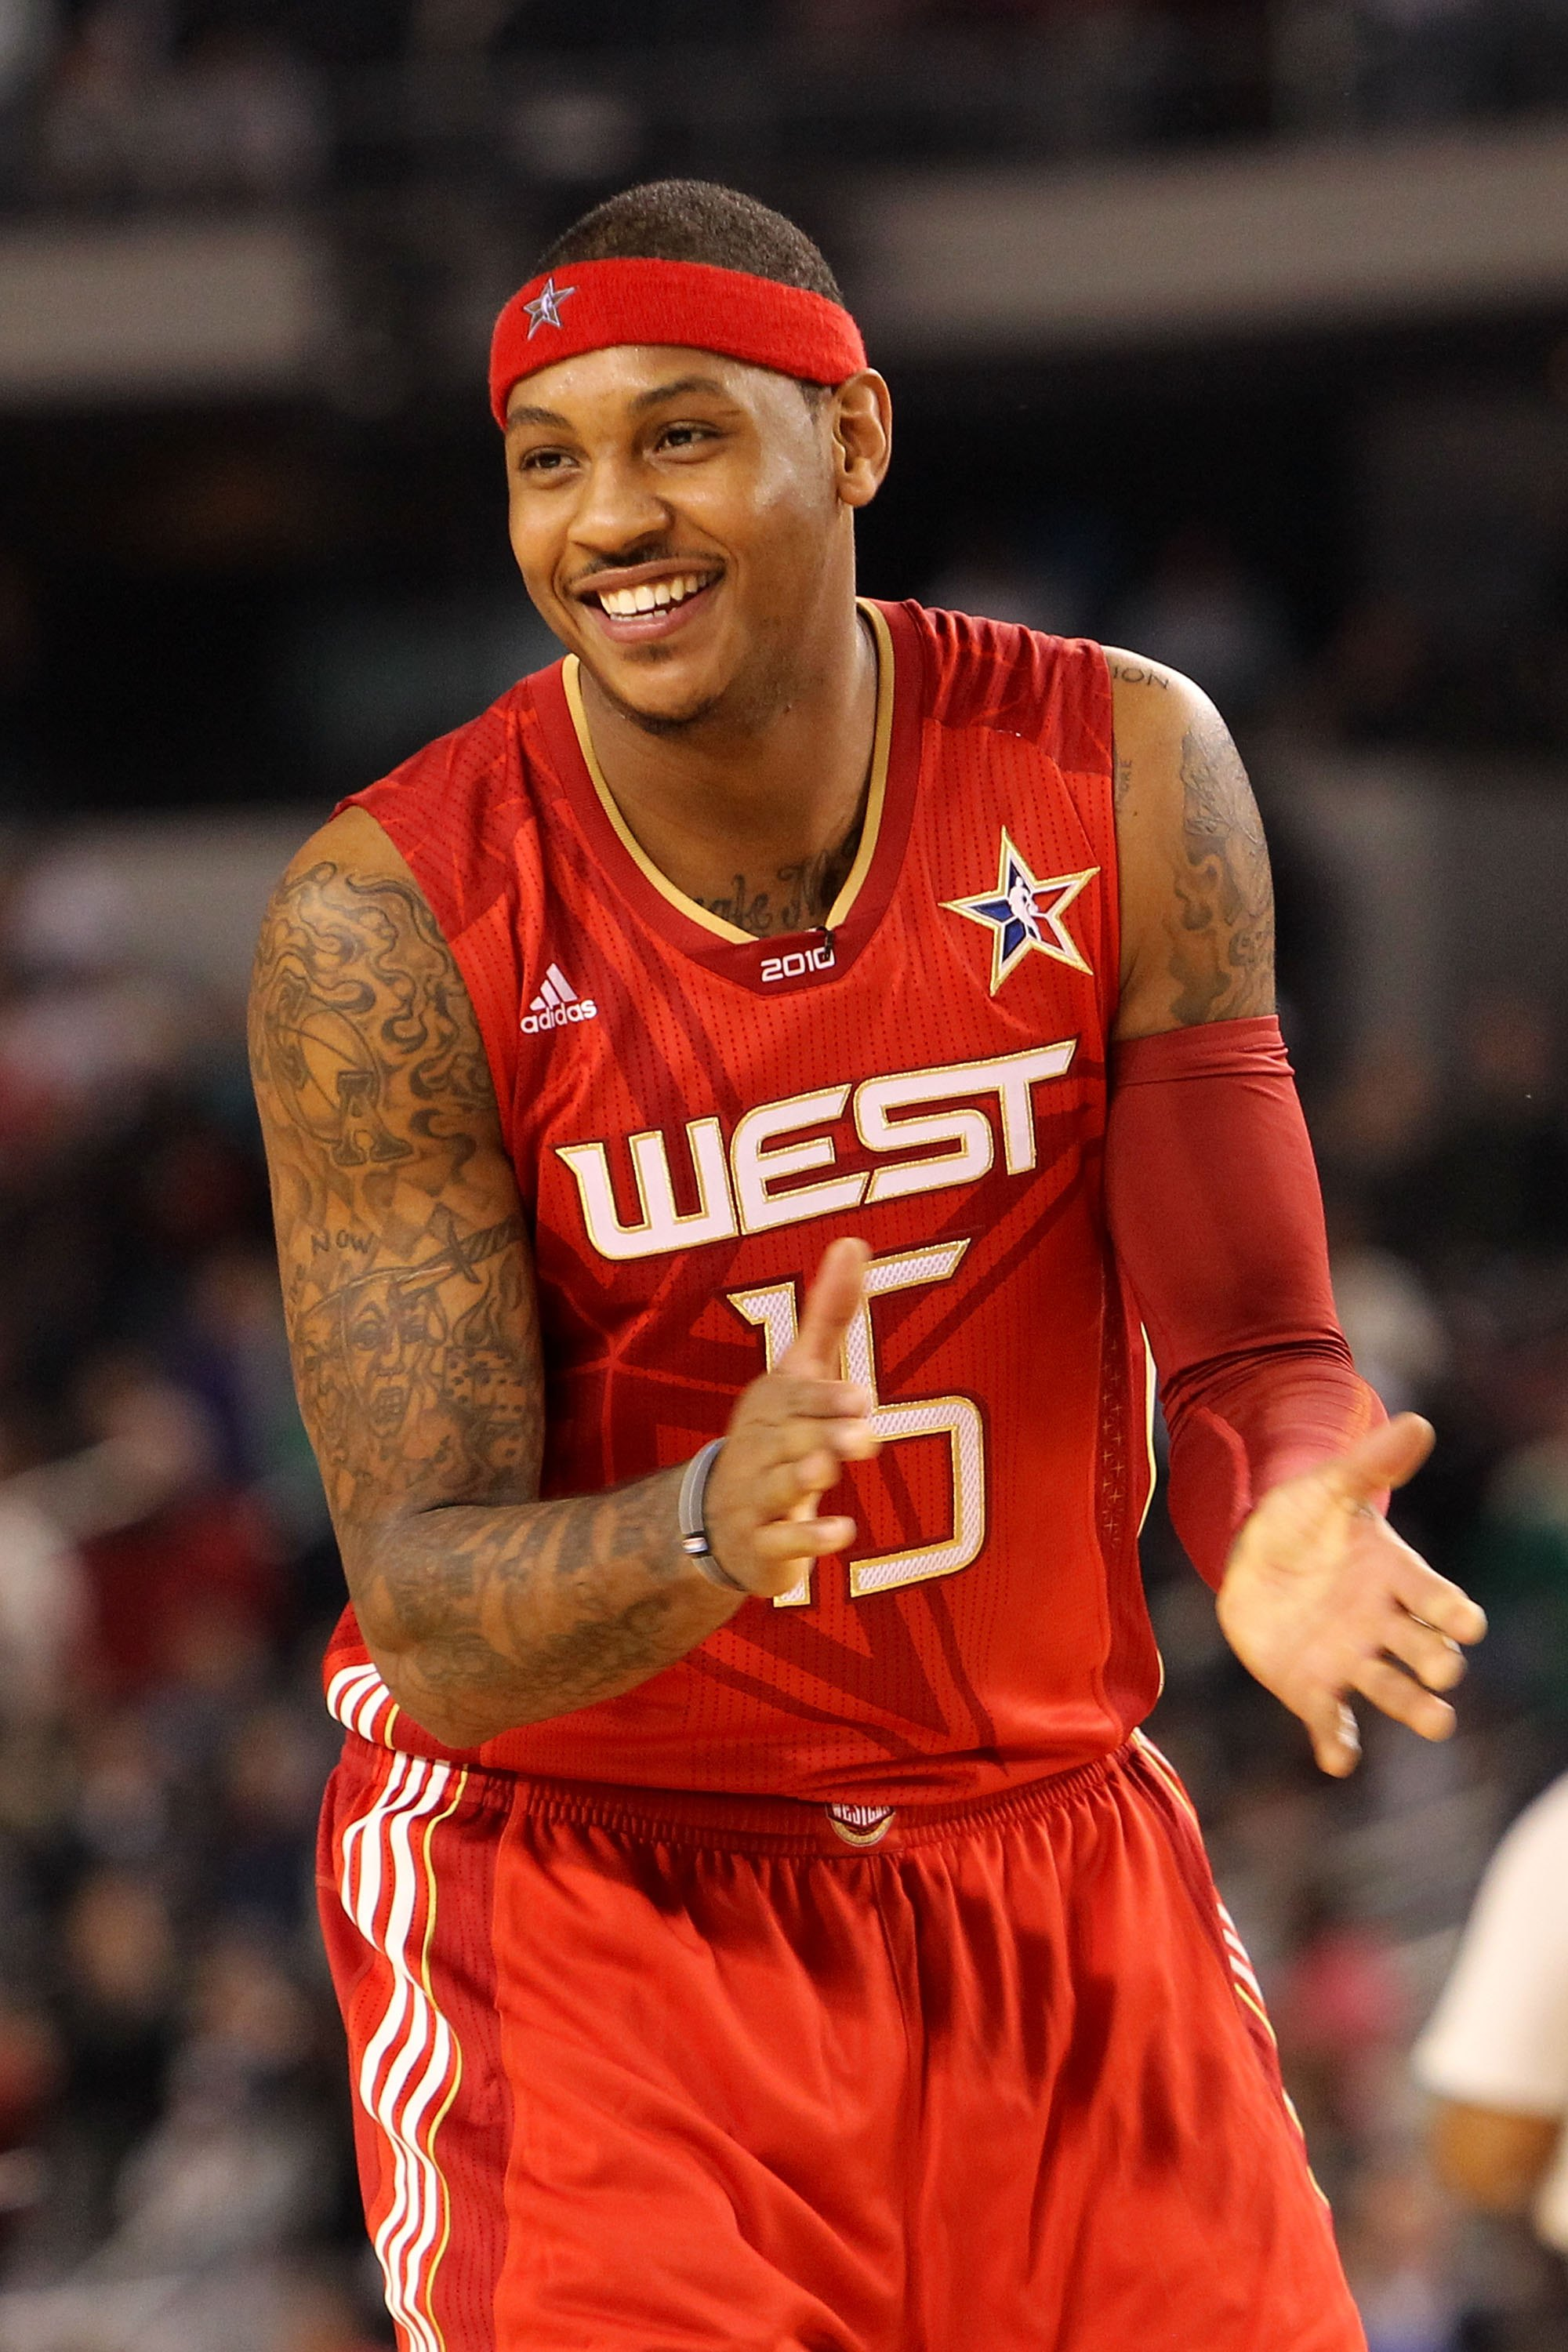 ARLINGTON, TX - FEBRUARY 14:  Carmelo Anthony #15 of the Western Conference smiles during the NBA All-Star Game, part of 2010 NBA All-Star Weekend at Cowboys Stadium on February 14, 2010 in Arlington, Texas. The Eastern Conference defeated the Western Con